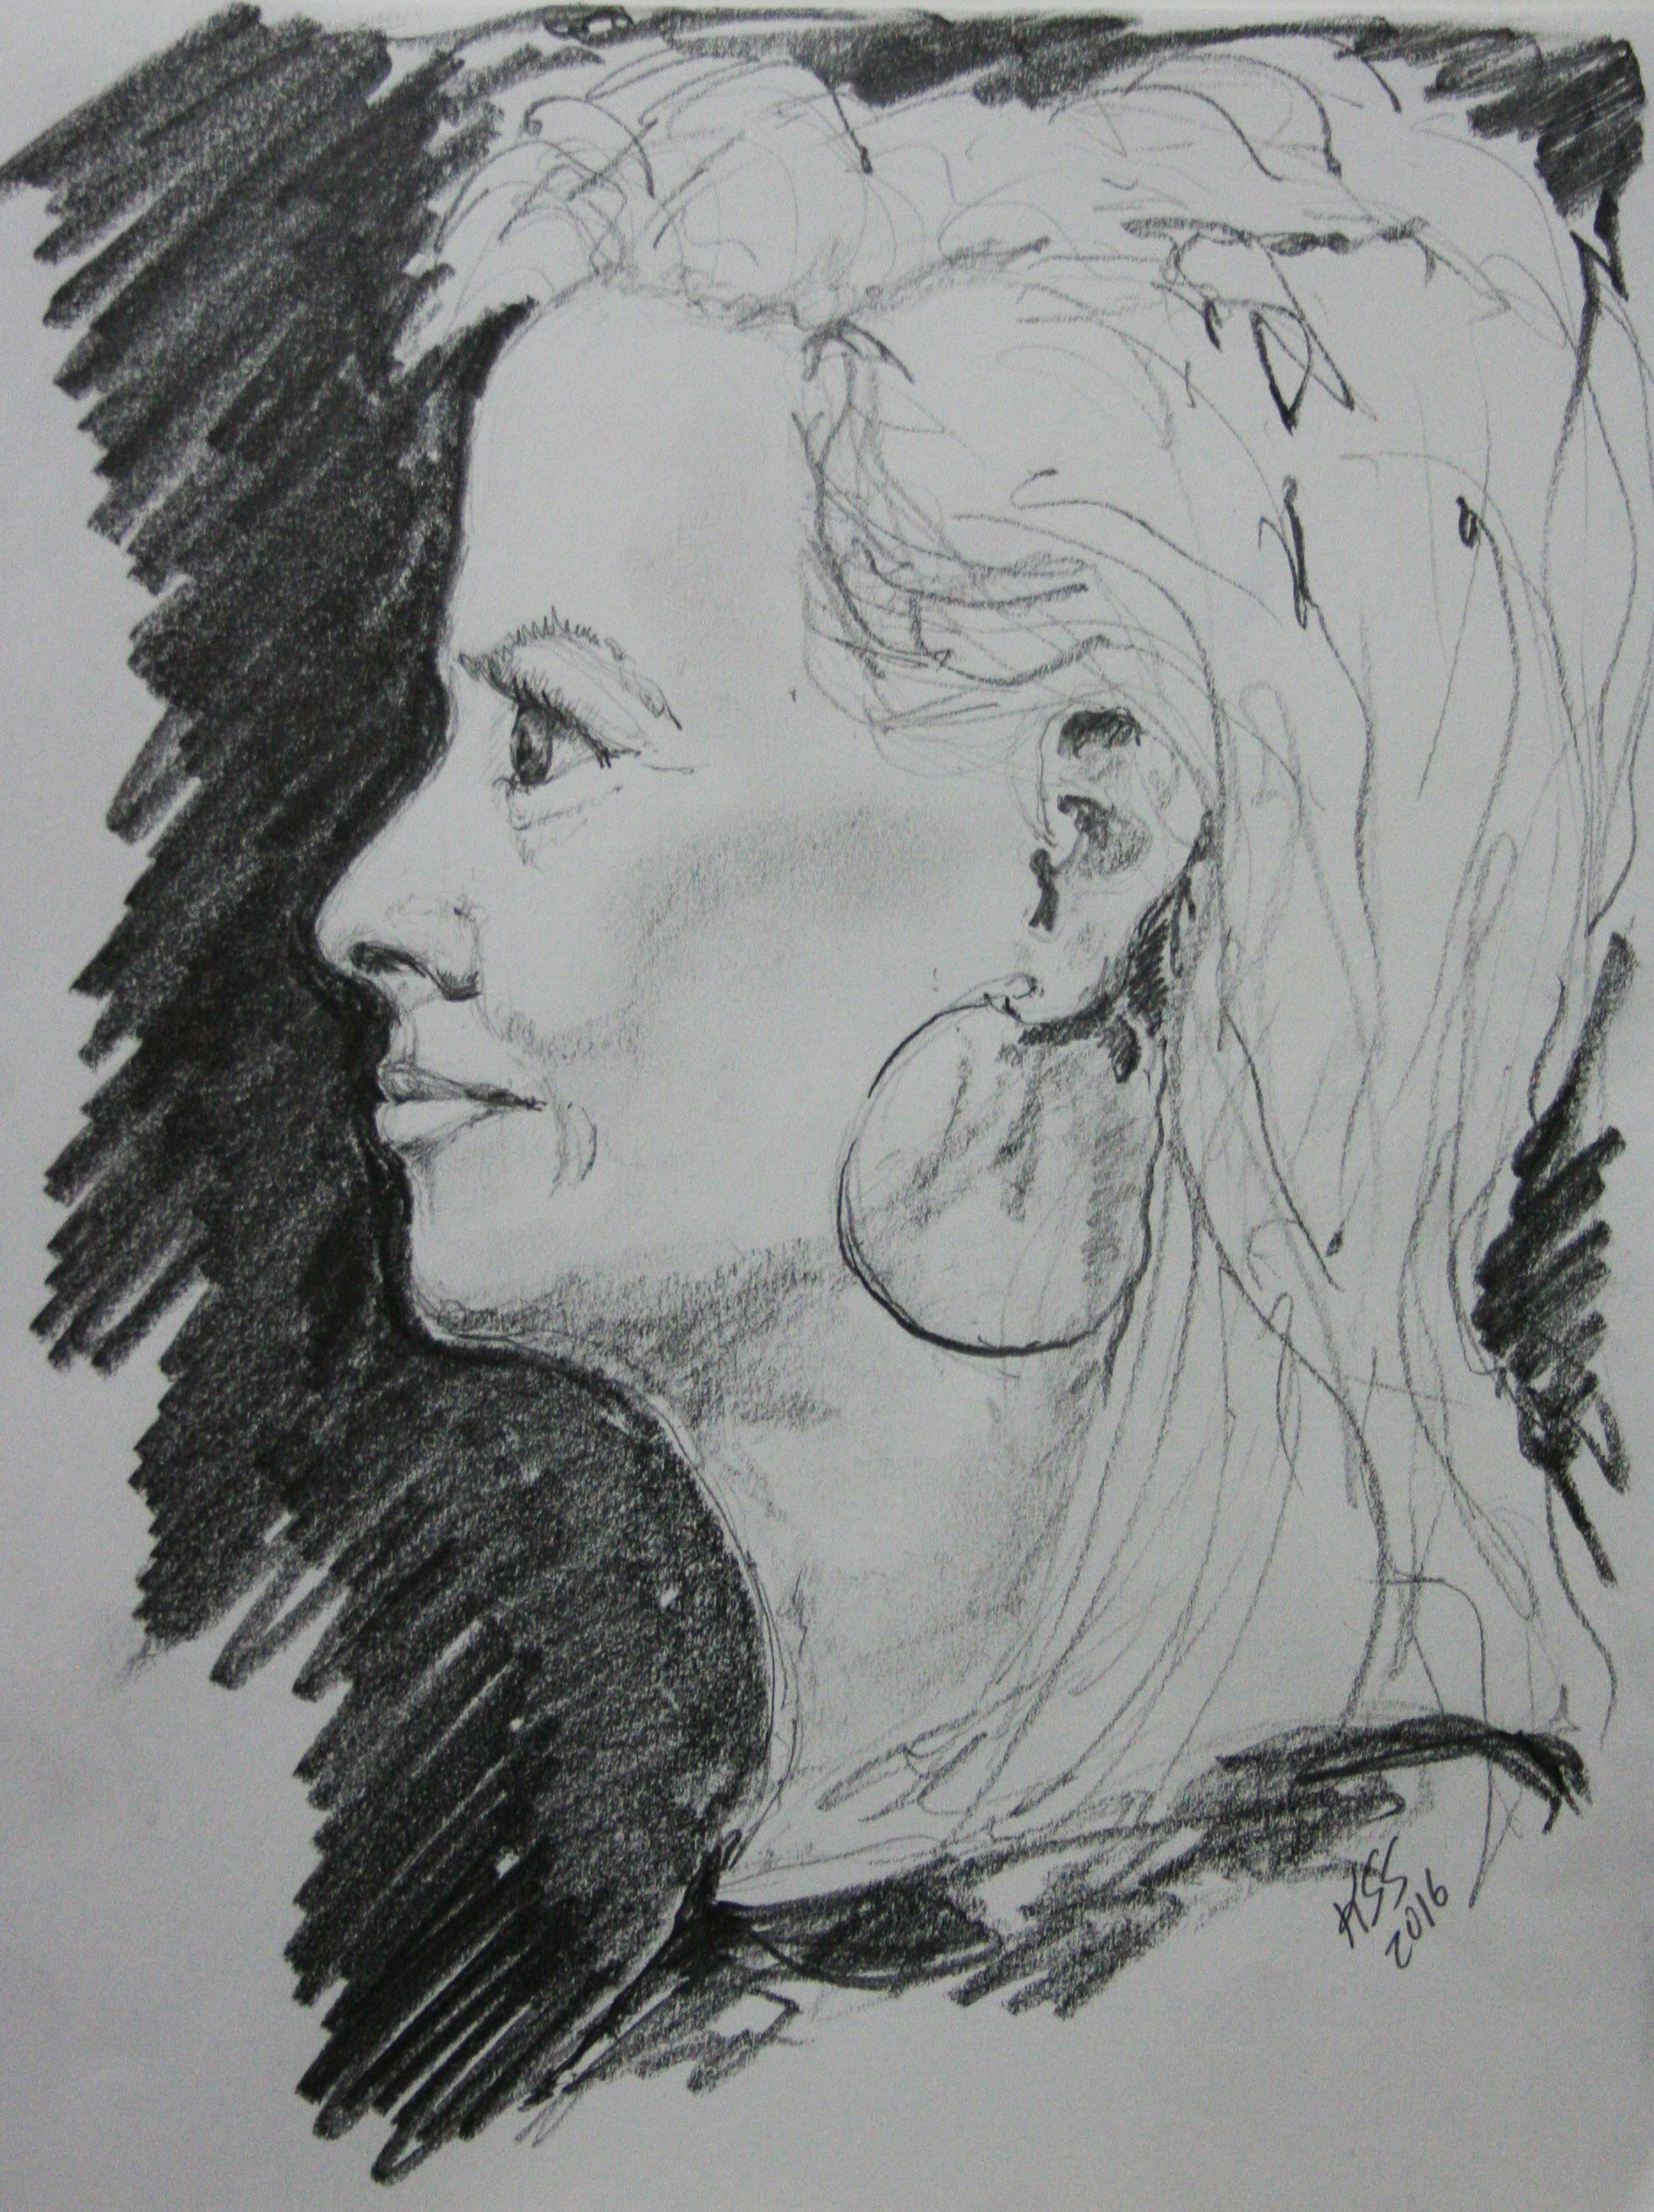 Katherine Stokes-Shafer did this half hour drawing.